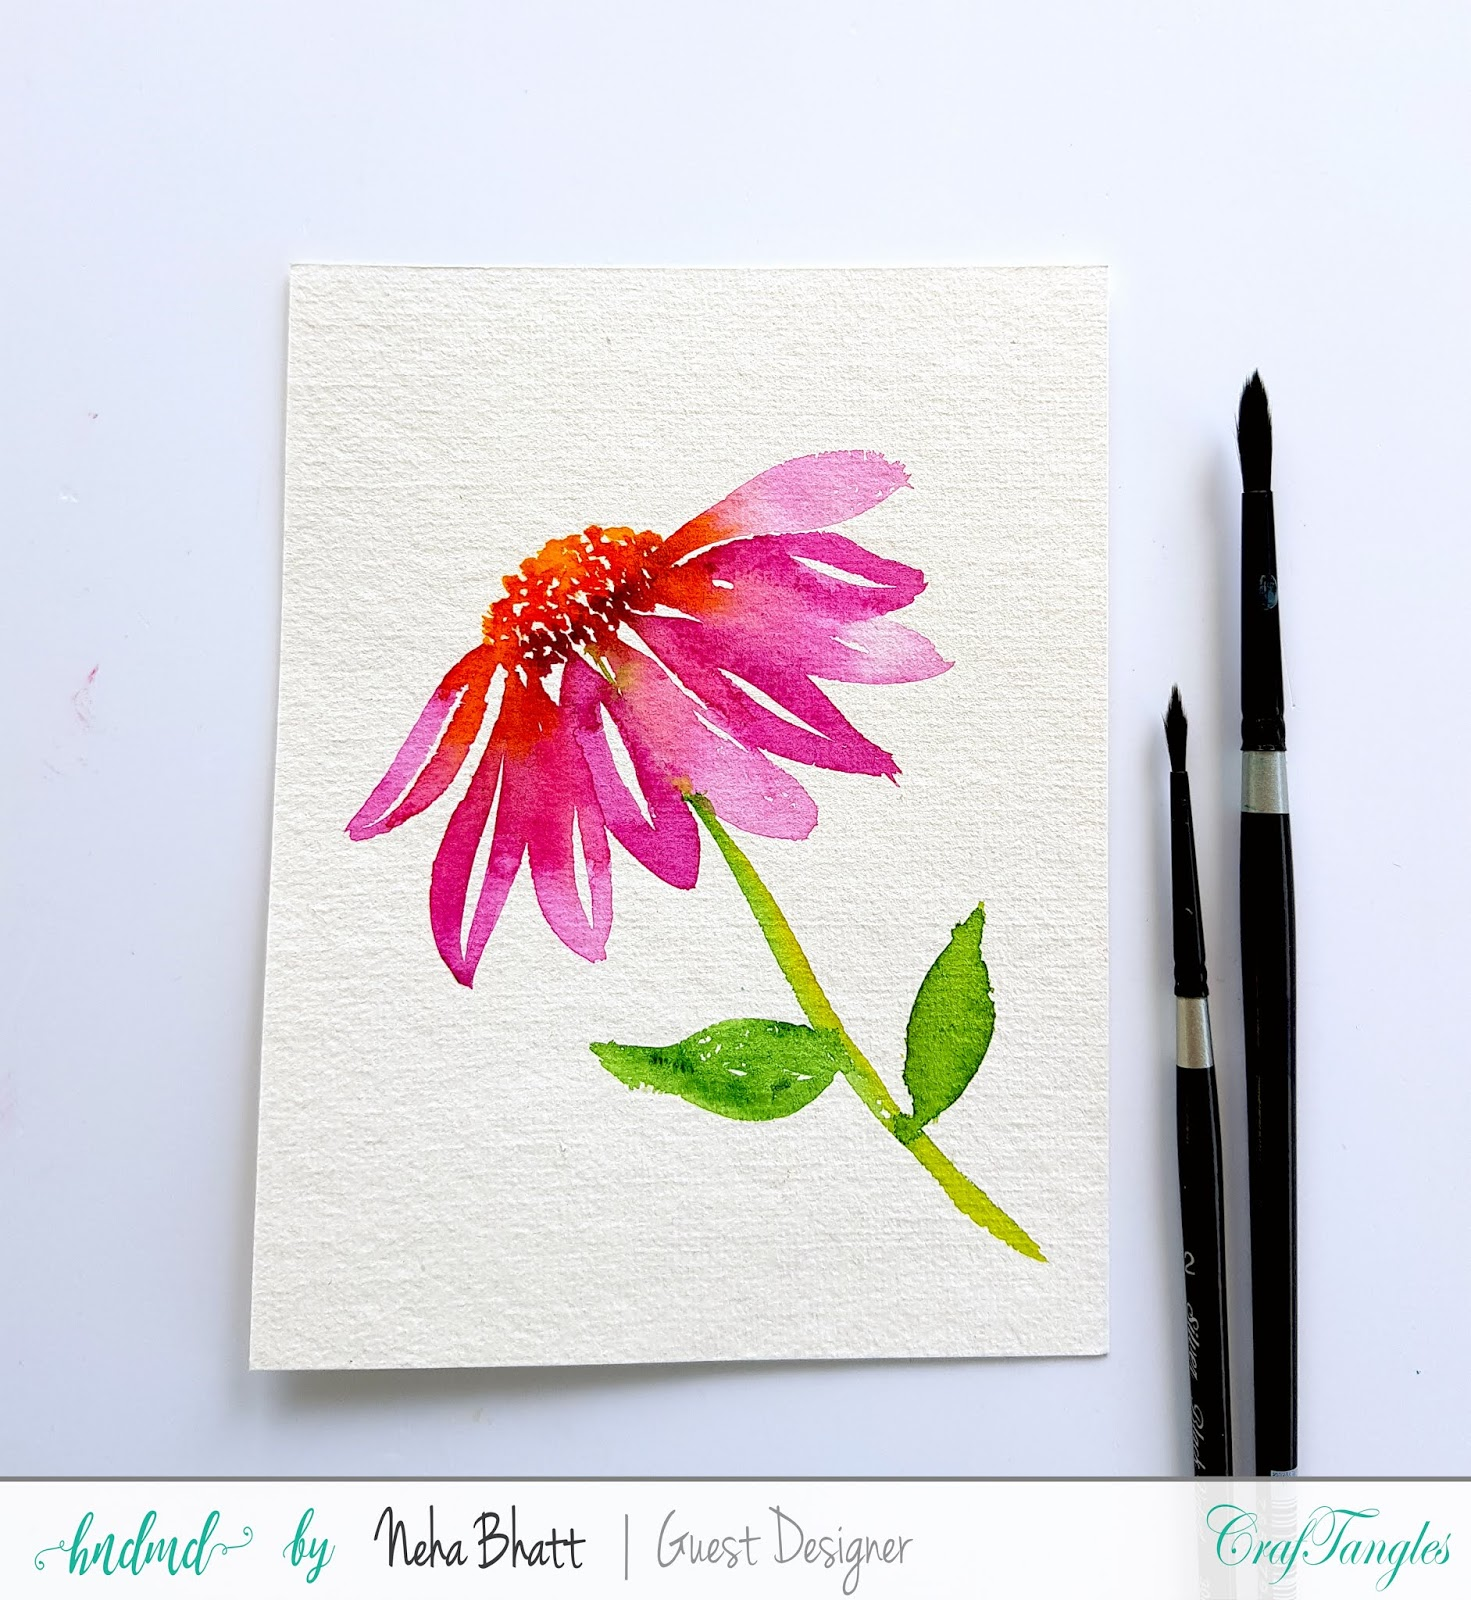 Some experiments with CrafTangles Rough watercolor paper by Neha Bhatt 1